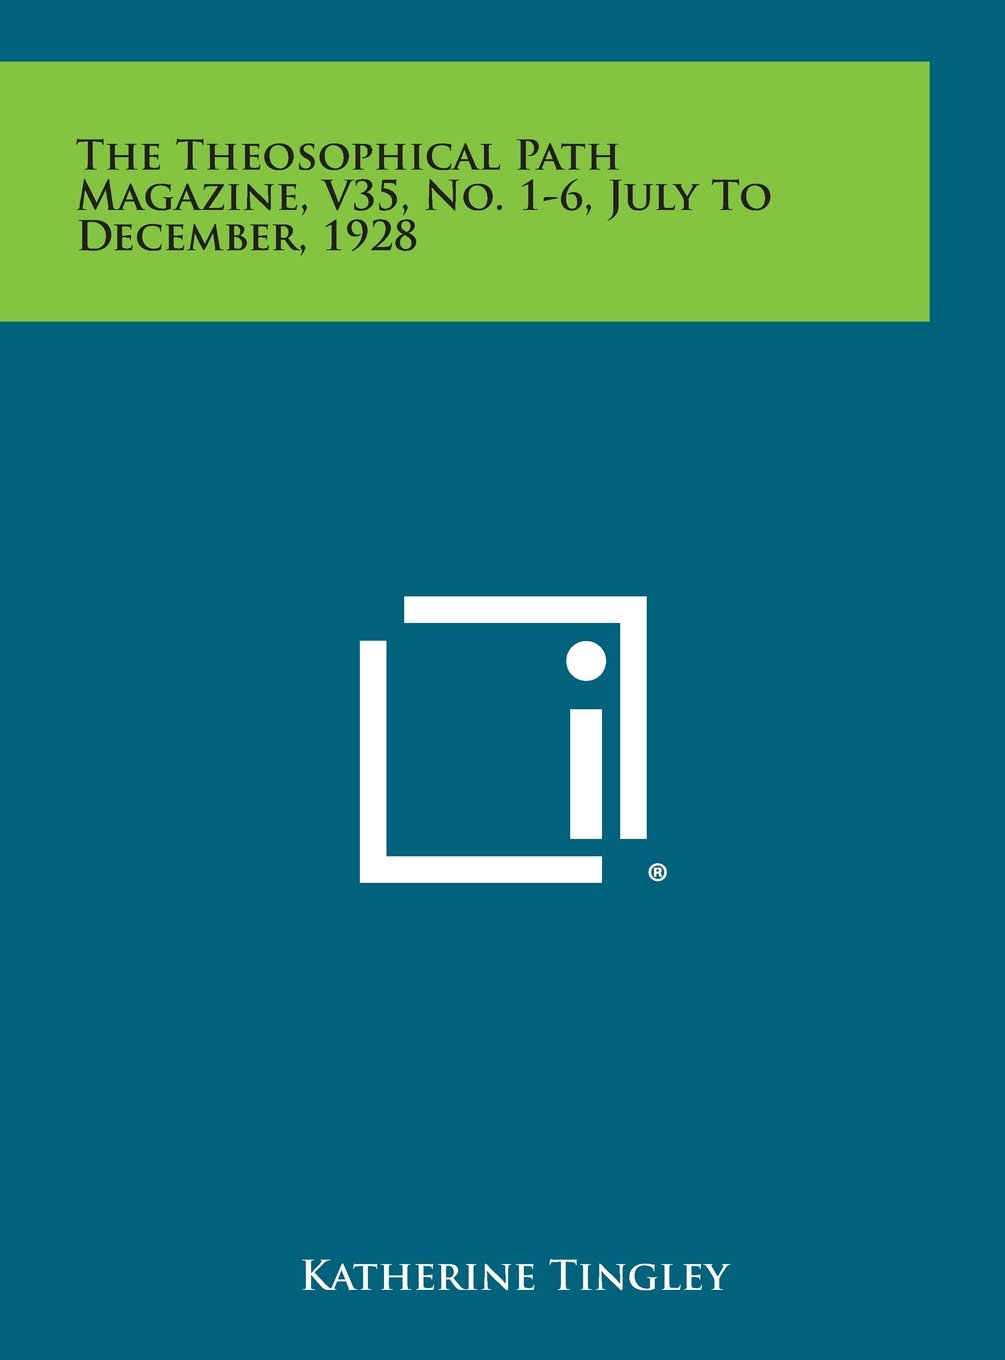 Download The Theosophical Path Magazine, V35, No. 1-6, July to December, 1928 ebook